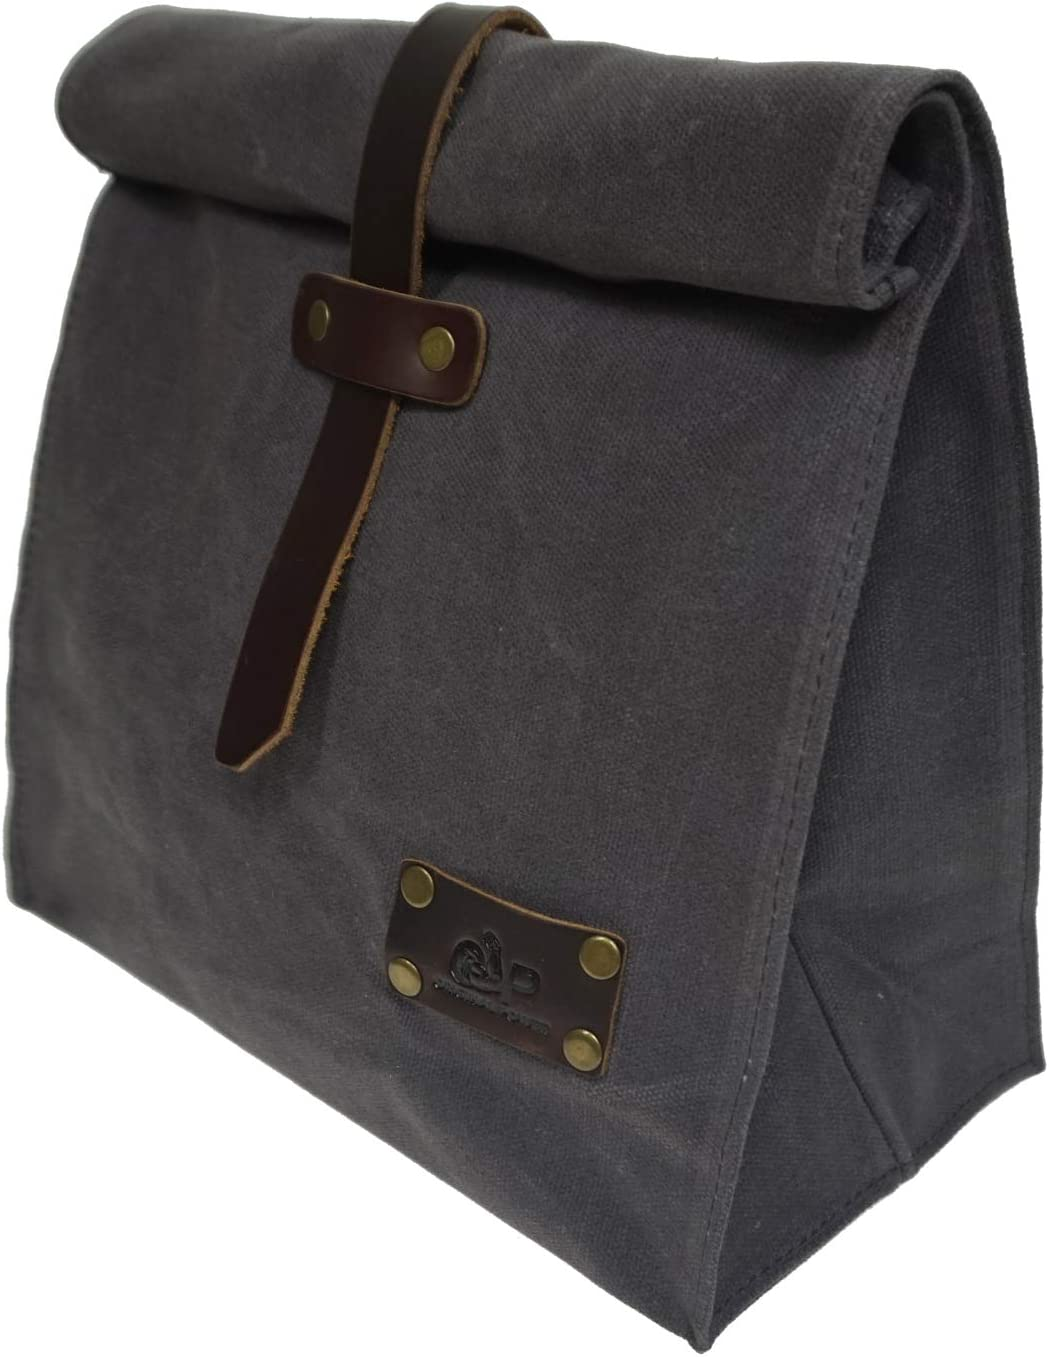 Waxed Canvas Lunch Bags, Reusable Lunch Box, Large Plastic-Free Washable Picnic Storage Bag (Grey)